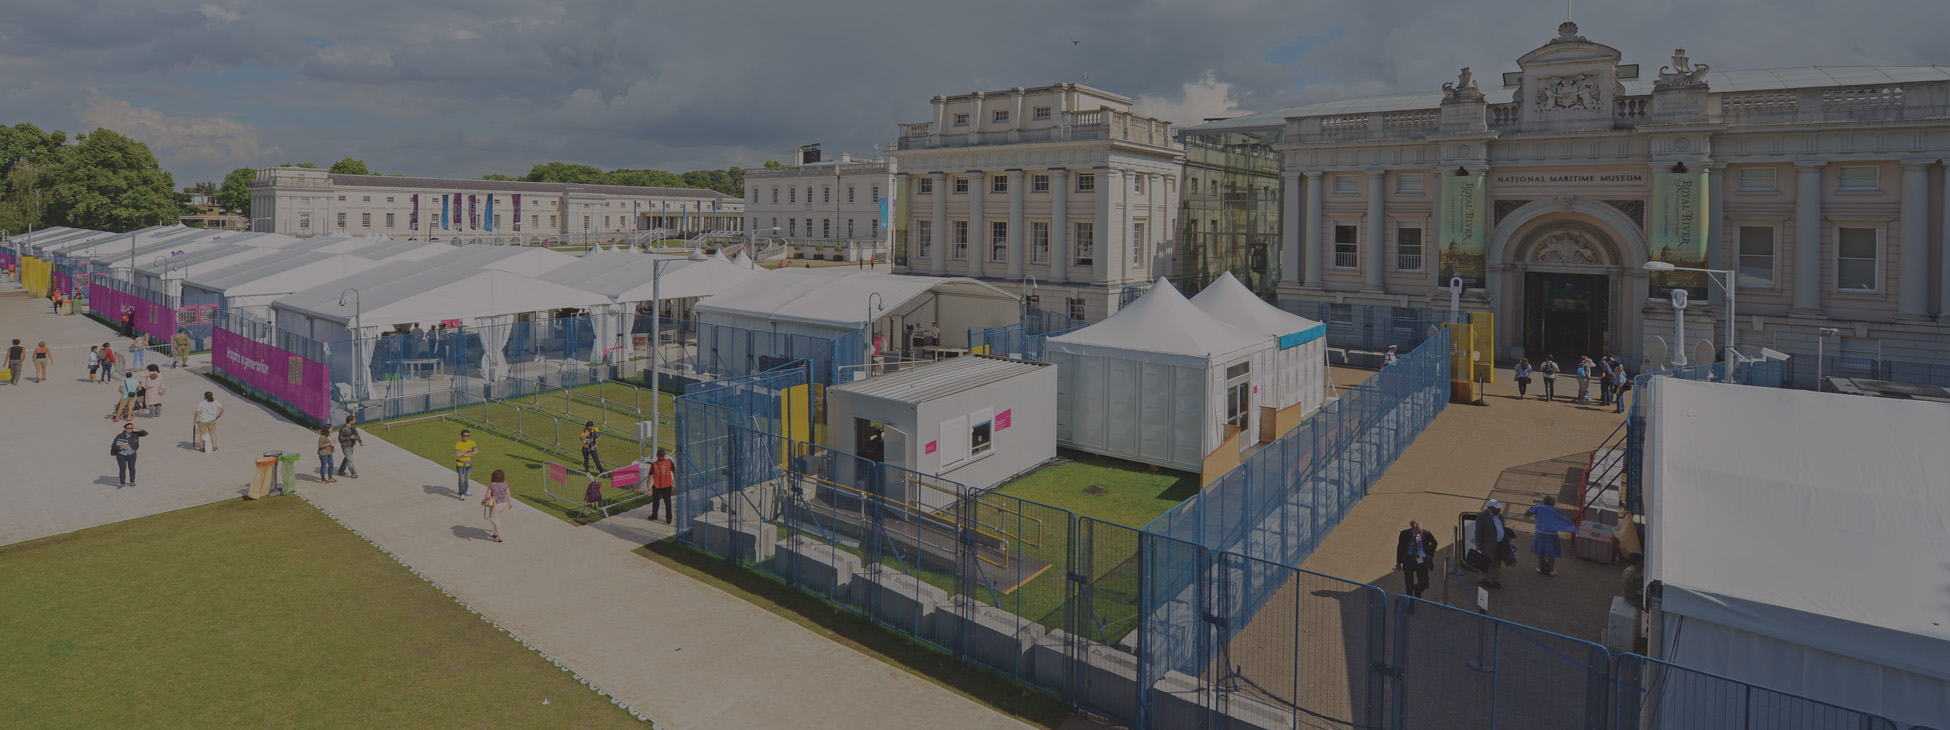 Official temporary security fencing supplier to the London 2012 Olympic venues